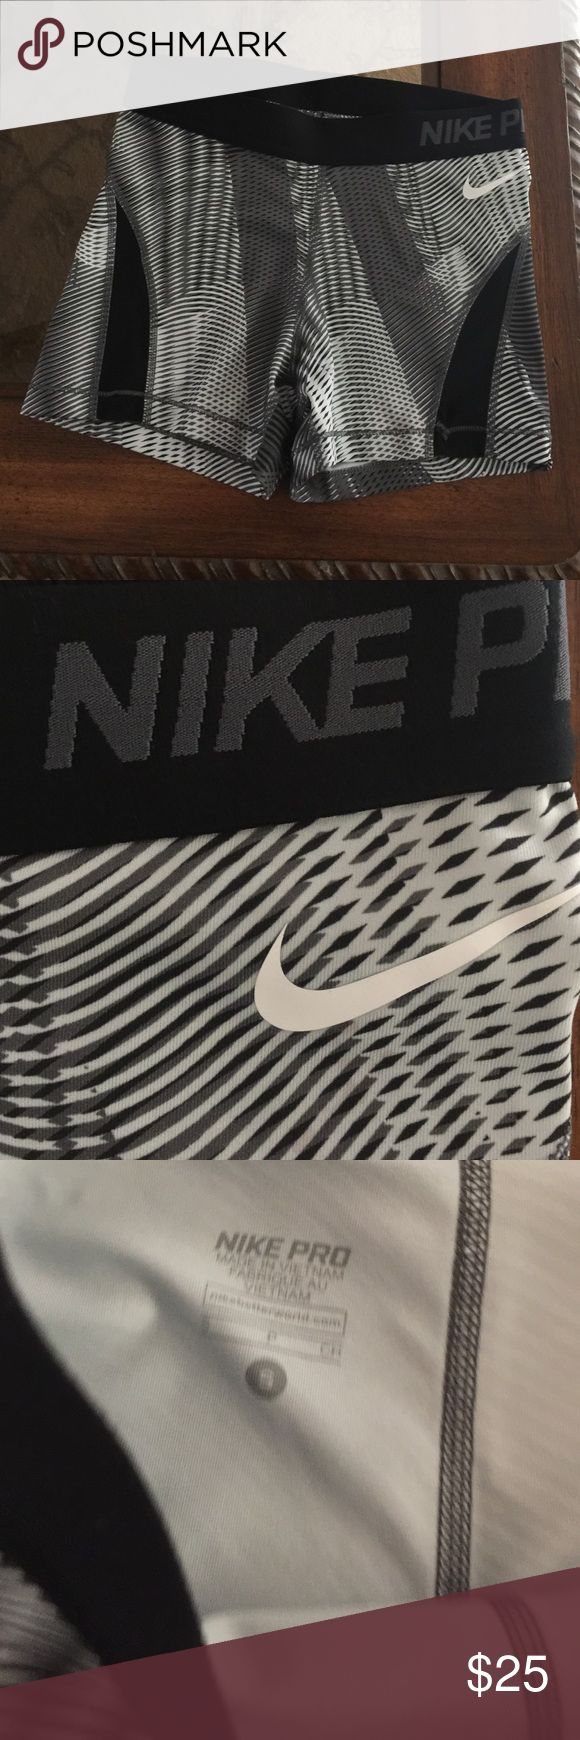 Brand new Nike pro spandex size small New Nike spandex without tags size small Nike Shorts